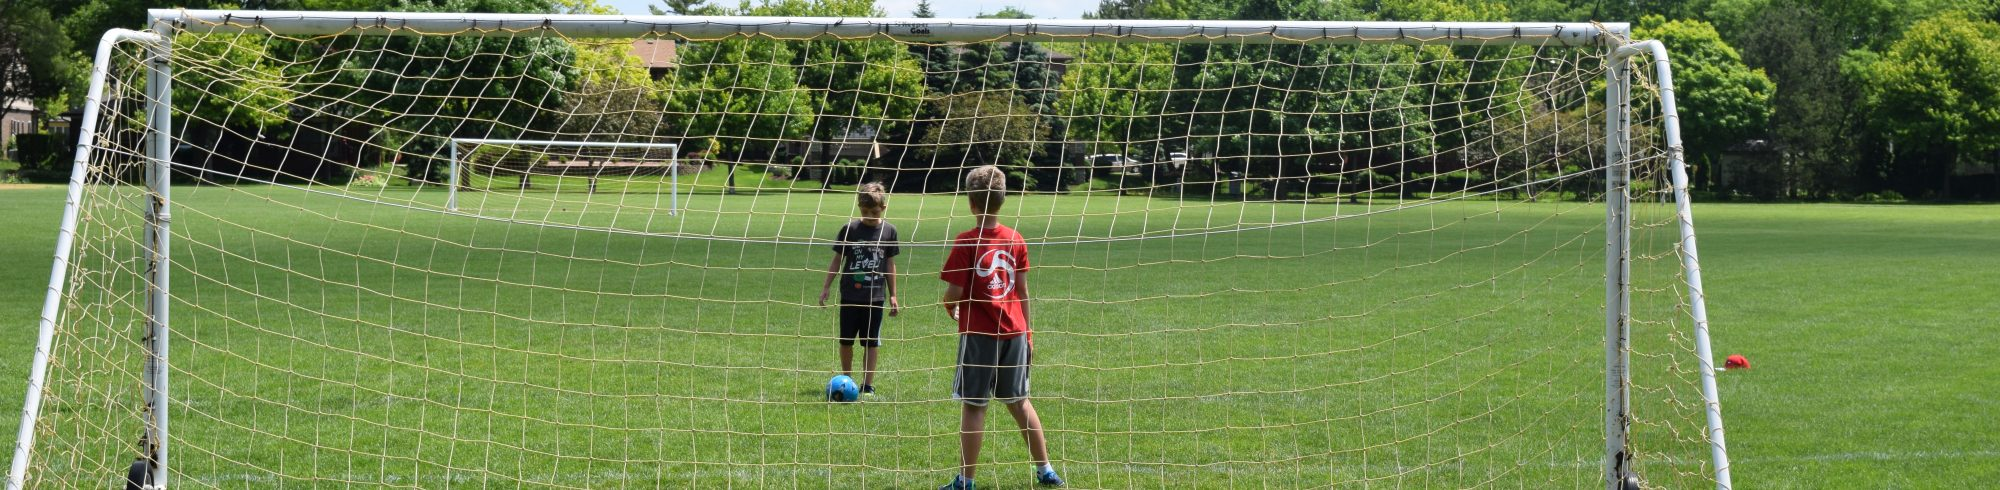 kids playing outdoor soccer